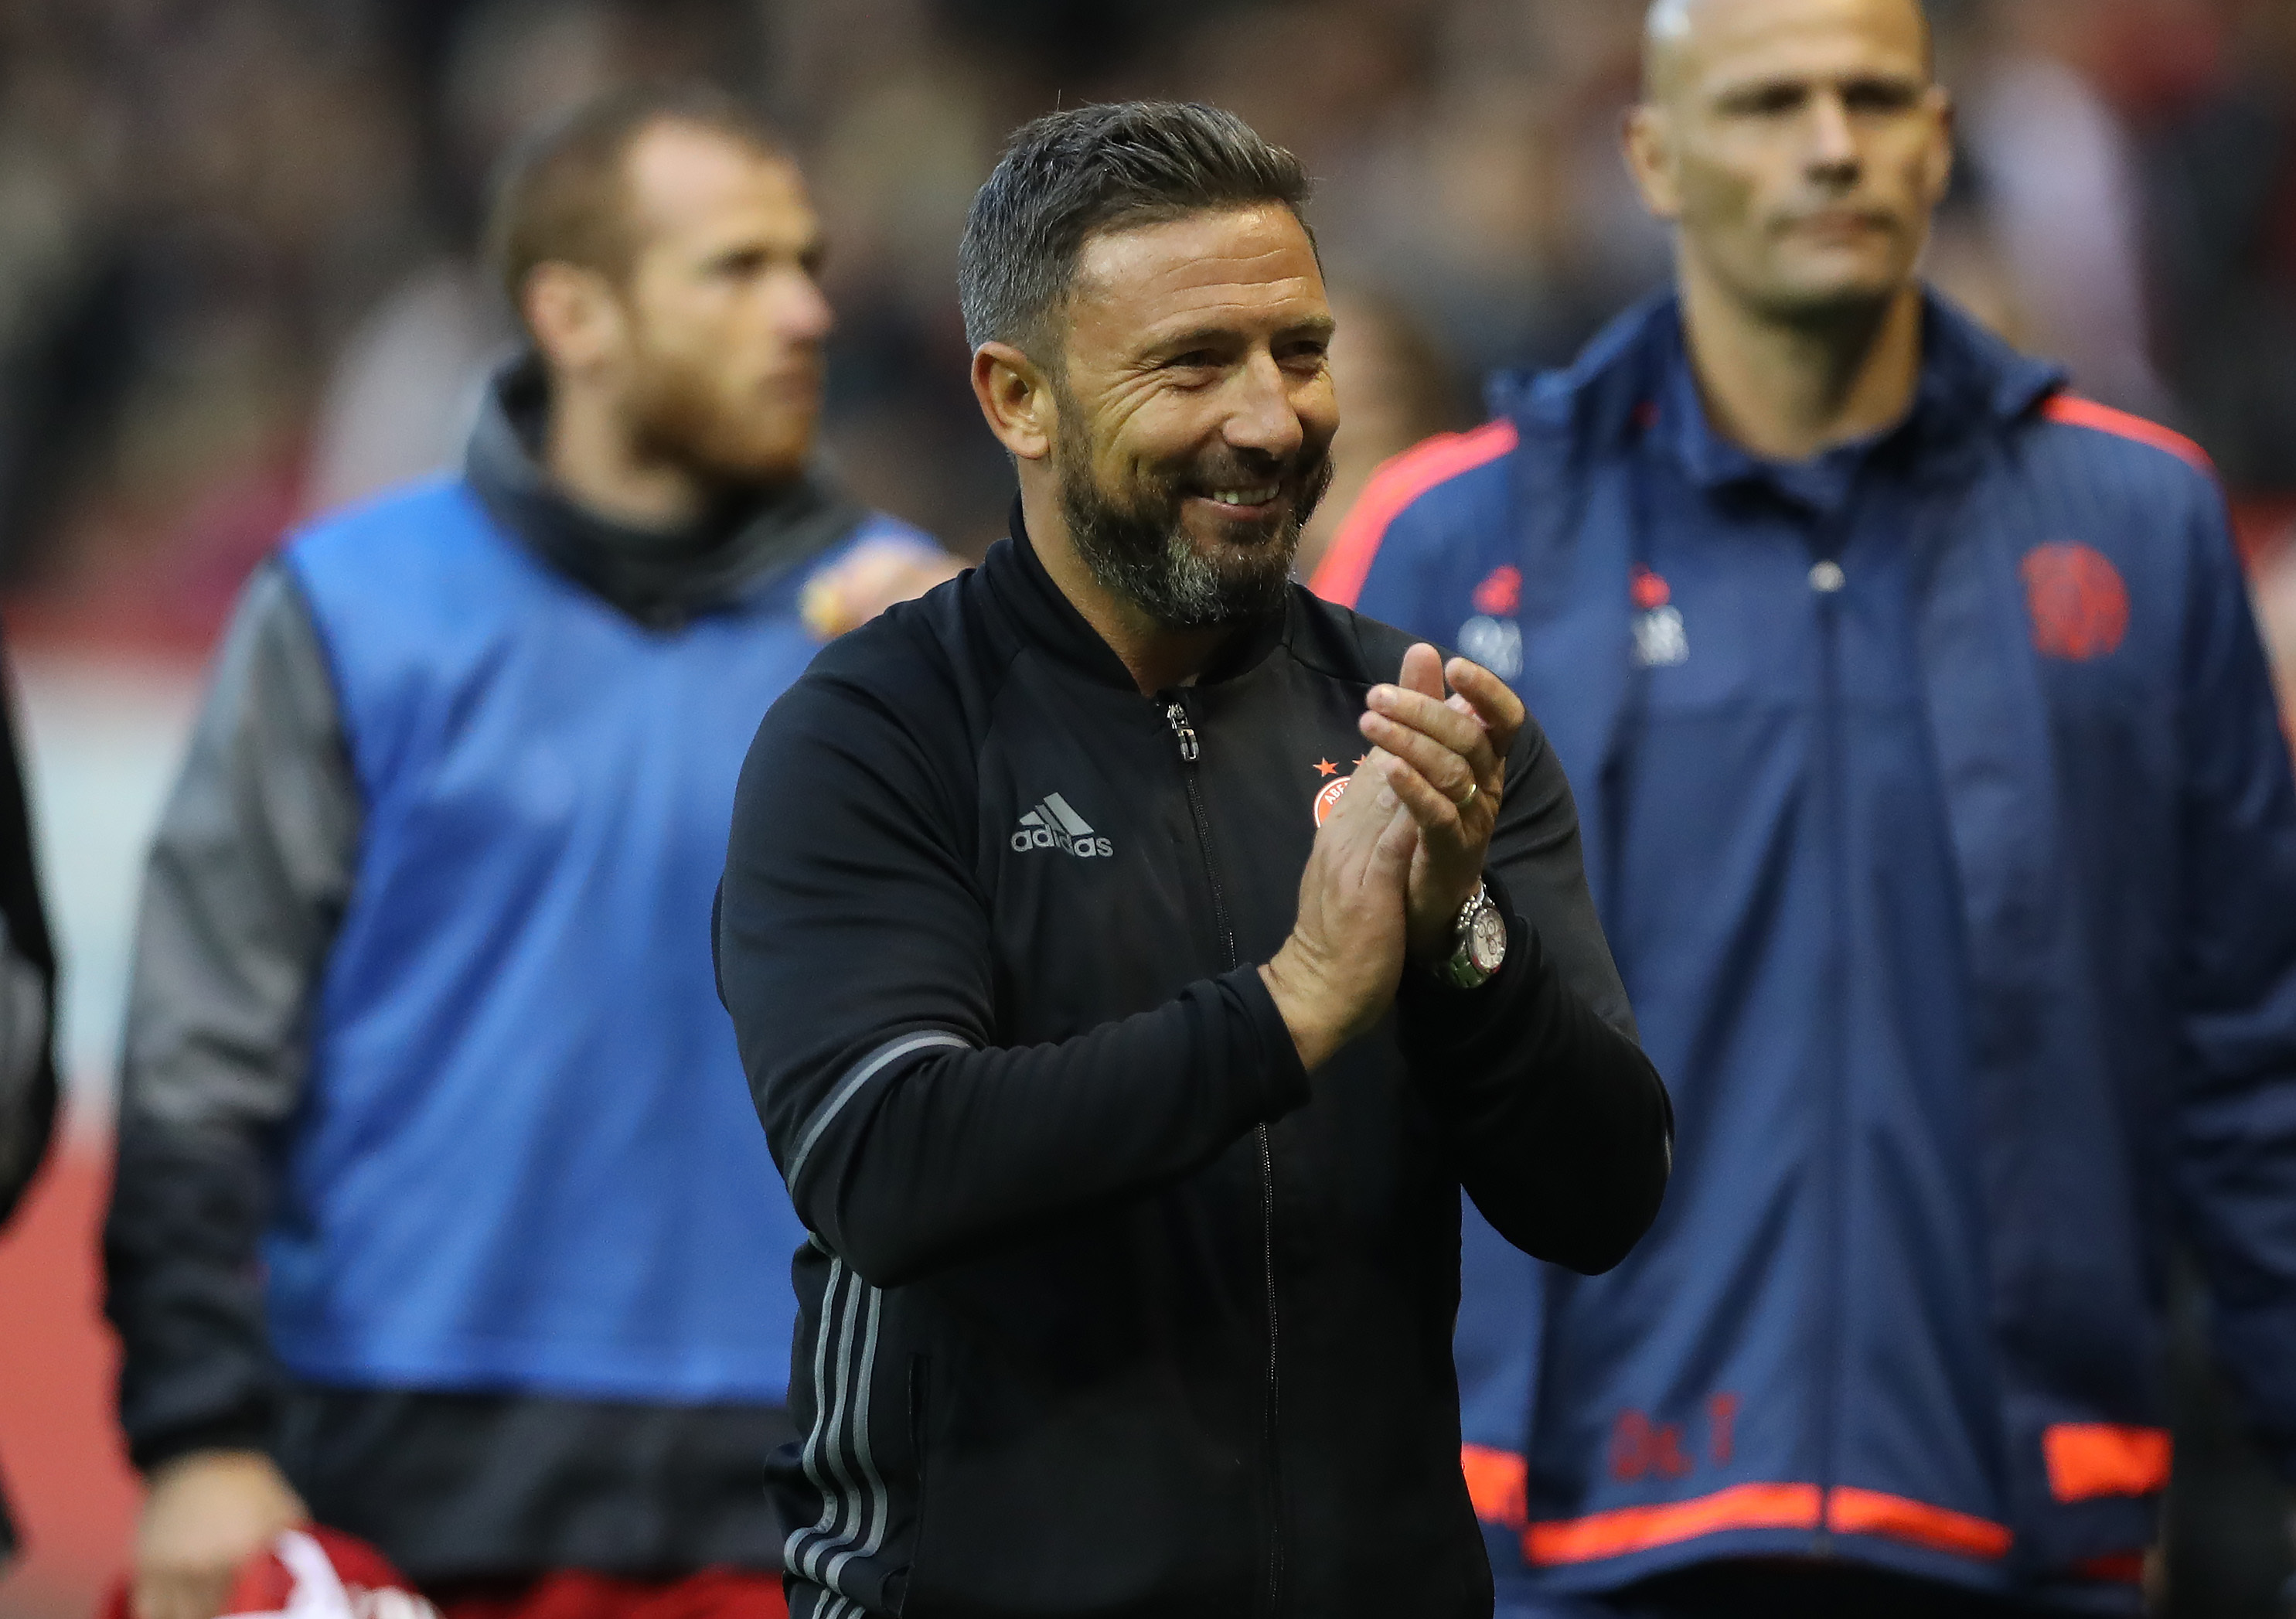 Aberdeen manager Derek McInnes celebrates at full time (Ian MacNicol/Getty Images)